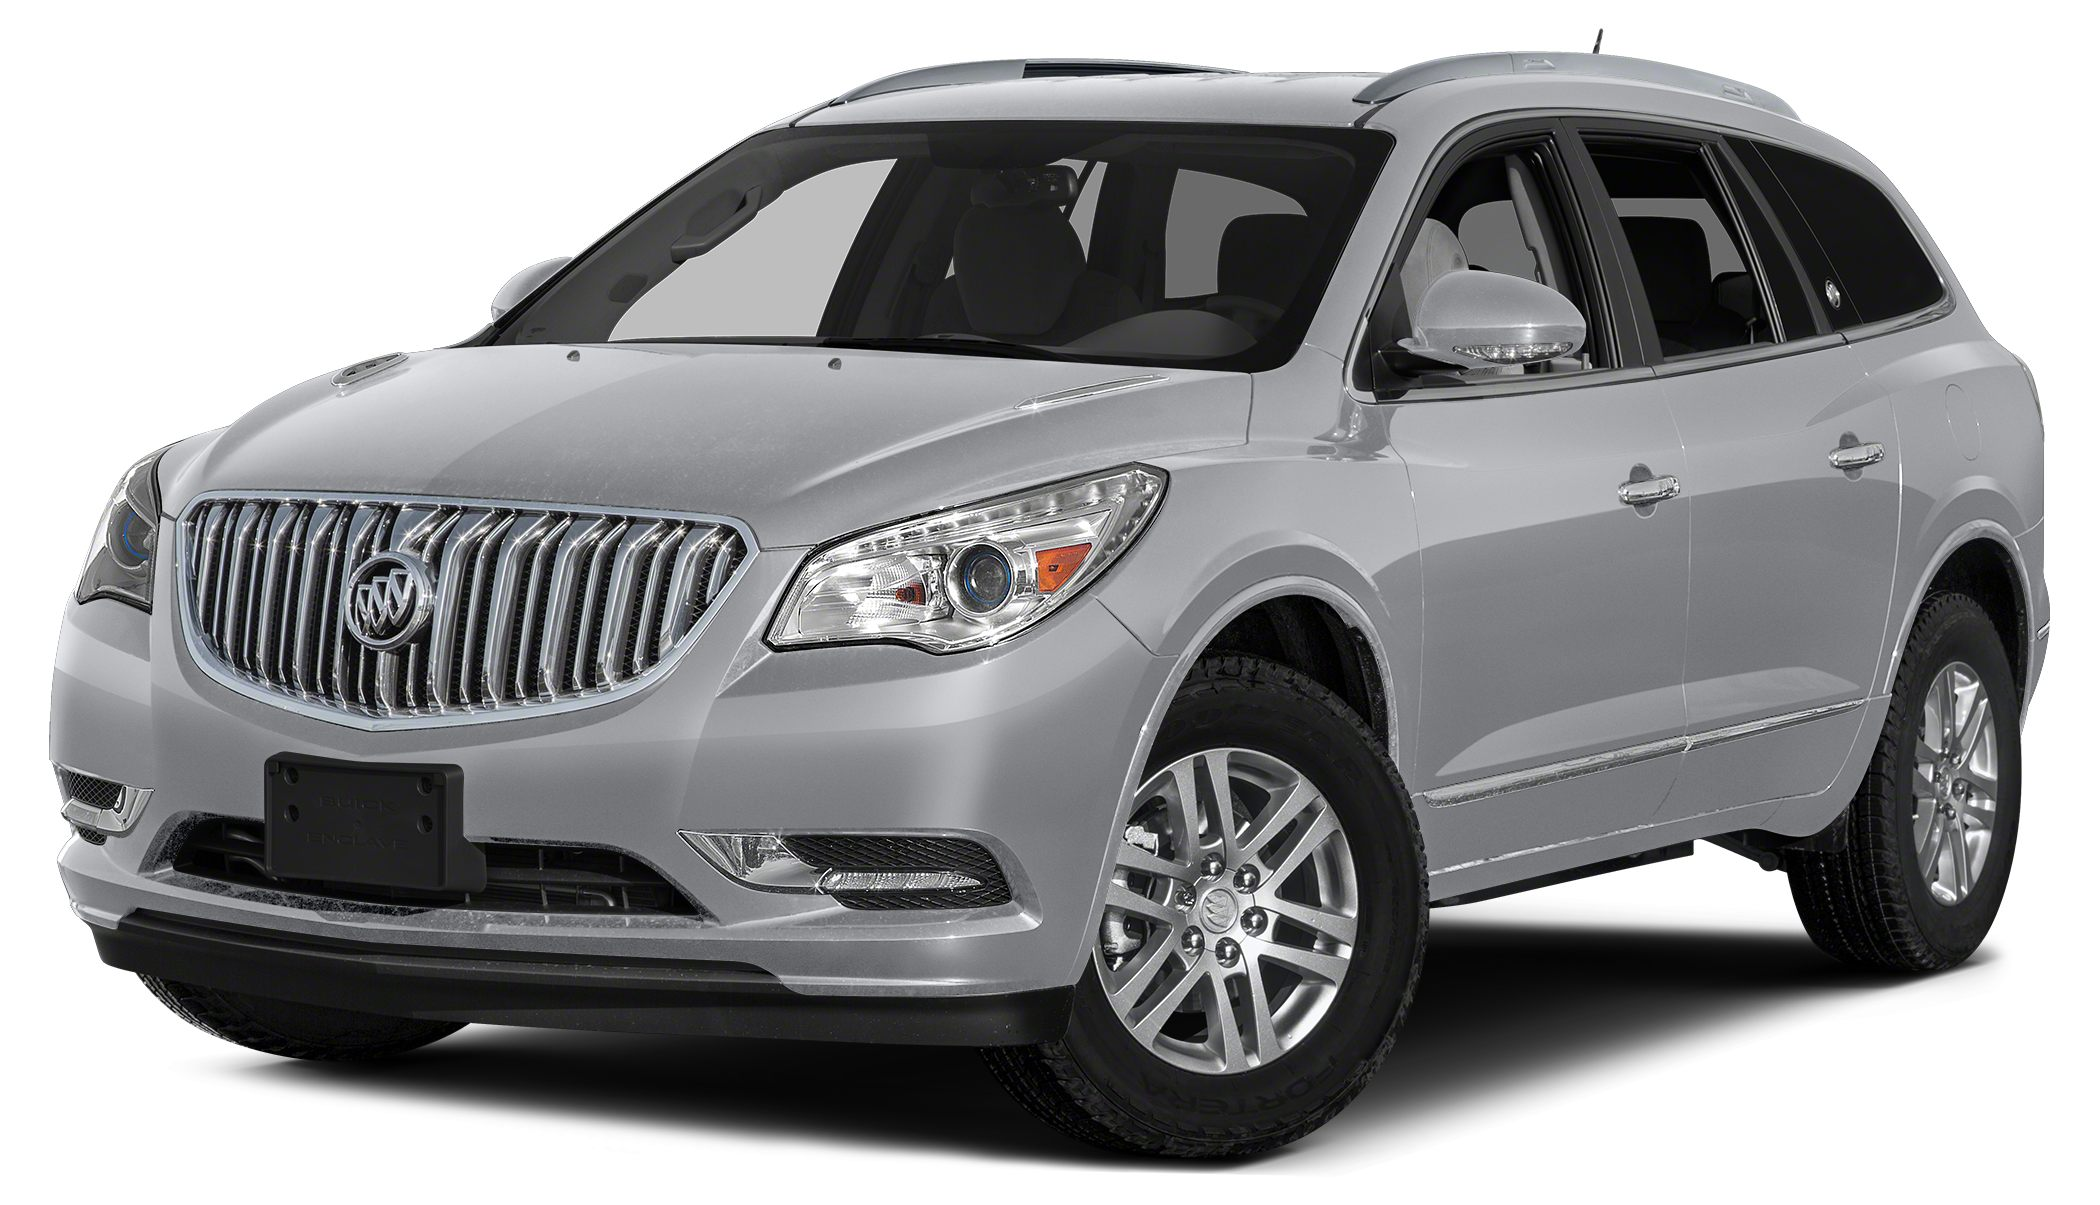 2017 Buick Enclave Leather Thank you for visiting another one of Conley Buick GMCs exclusive list